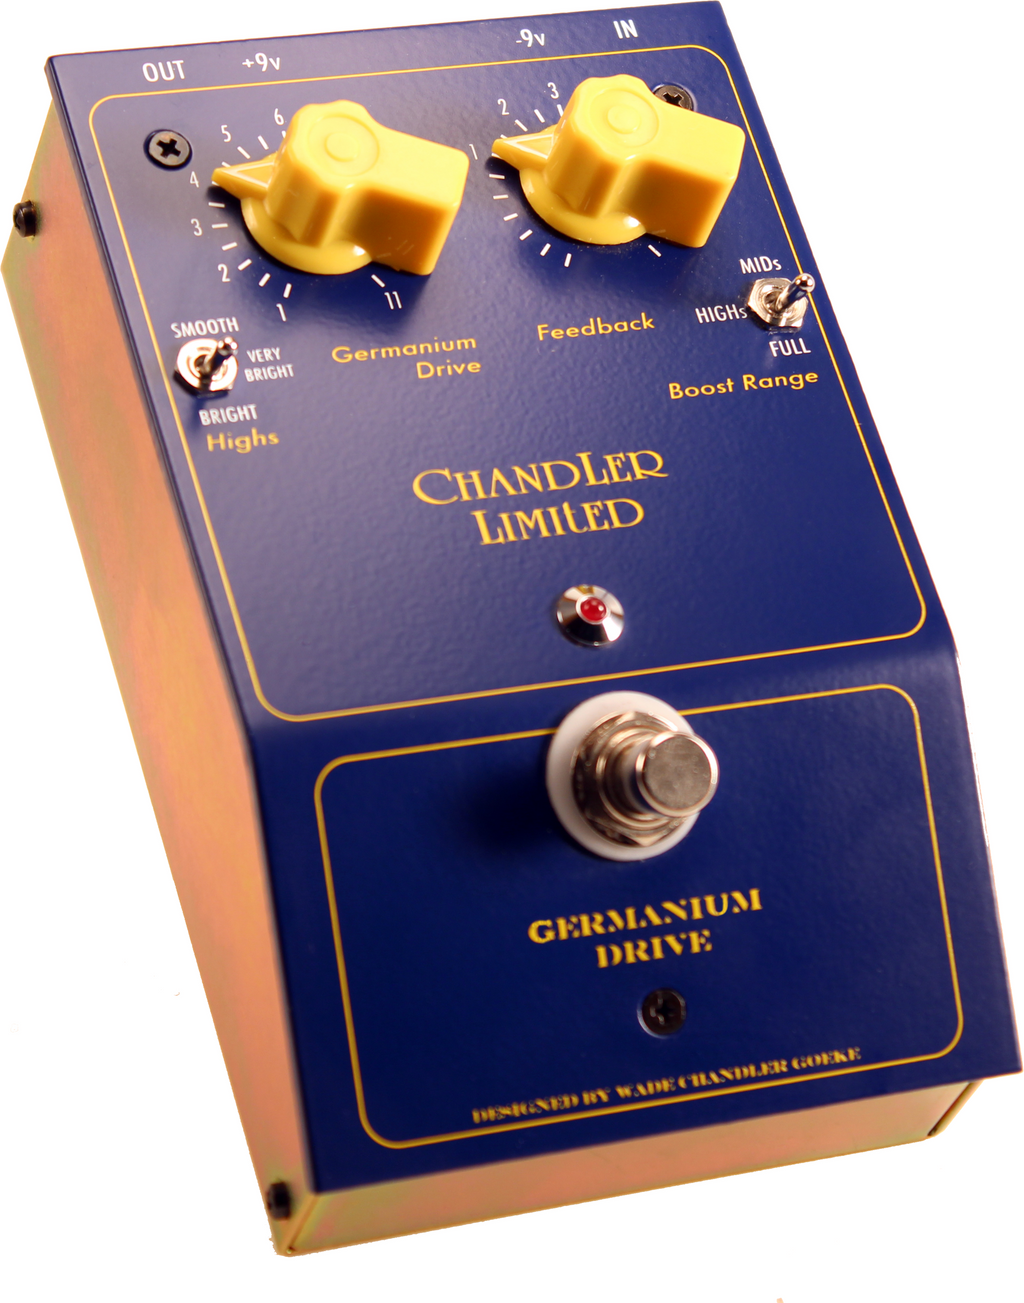 Chandler Limited Germanium Drive - Drive Effect Guitar/Bass/Keyboard, NOTE POWER REQUIREMENTS